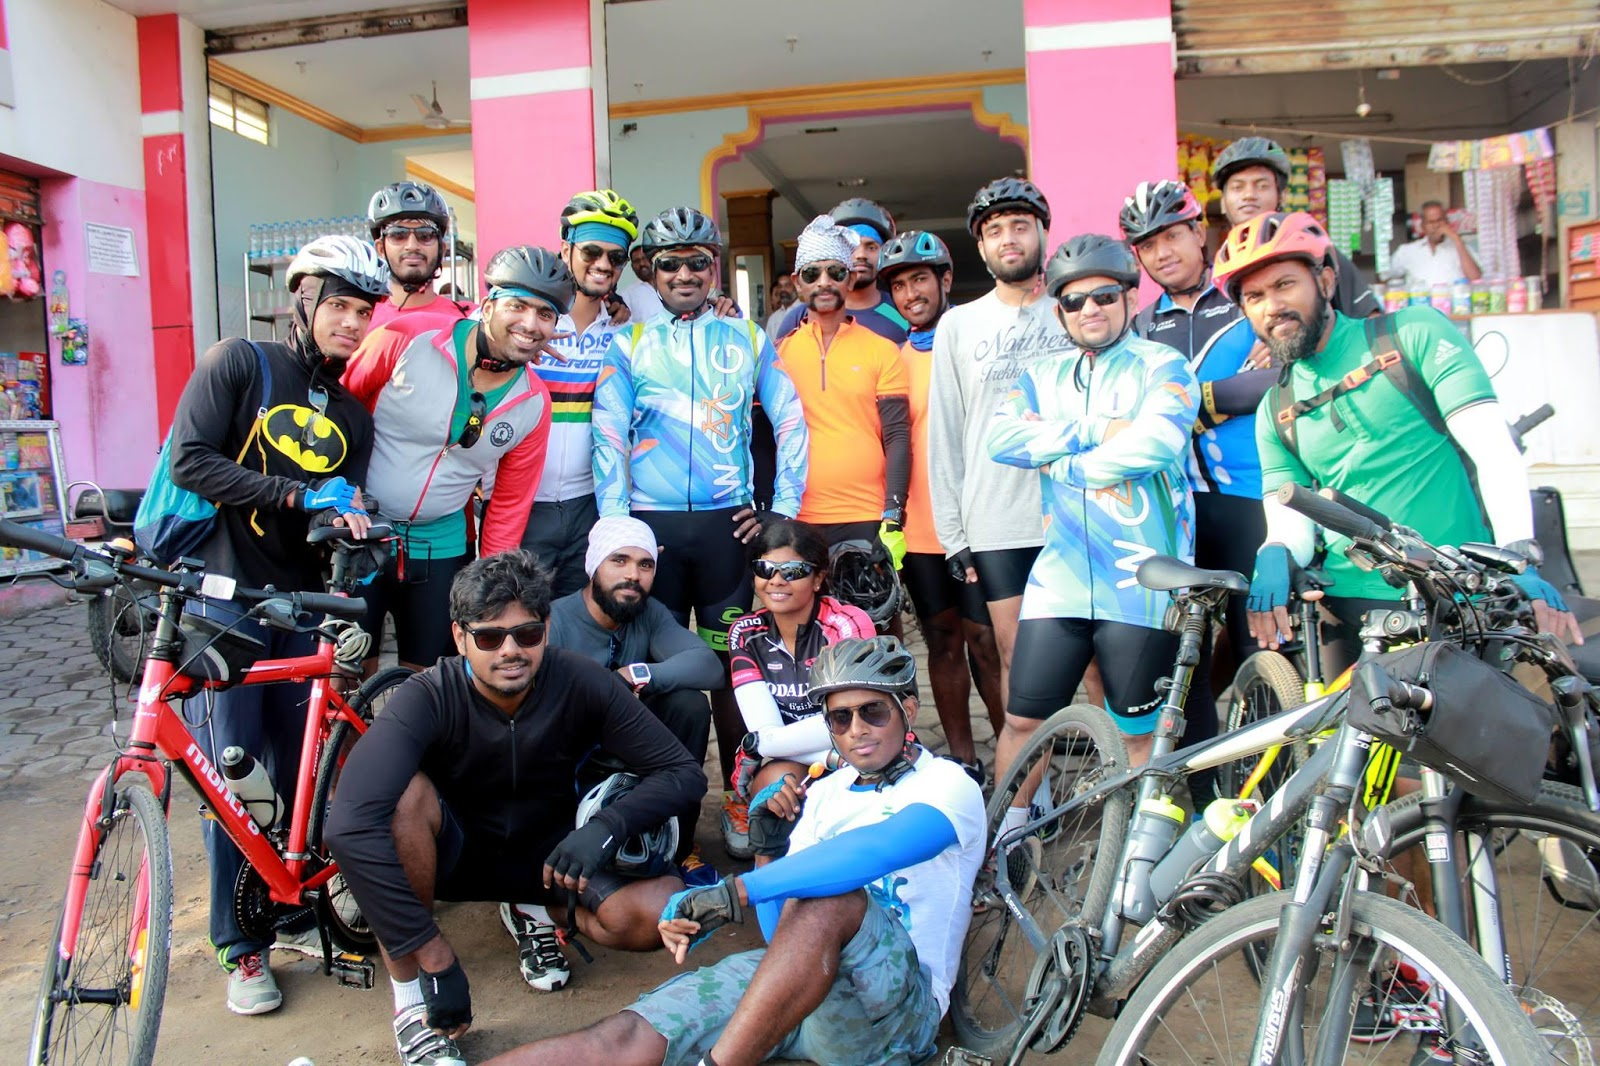 Wccg Chennai Cyclists 2016 Refill Msl By Brm We Reached A Place Called Kalangani In The Highway When It Suddenly Struck That